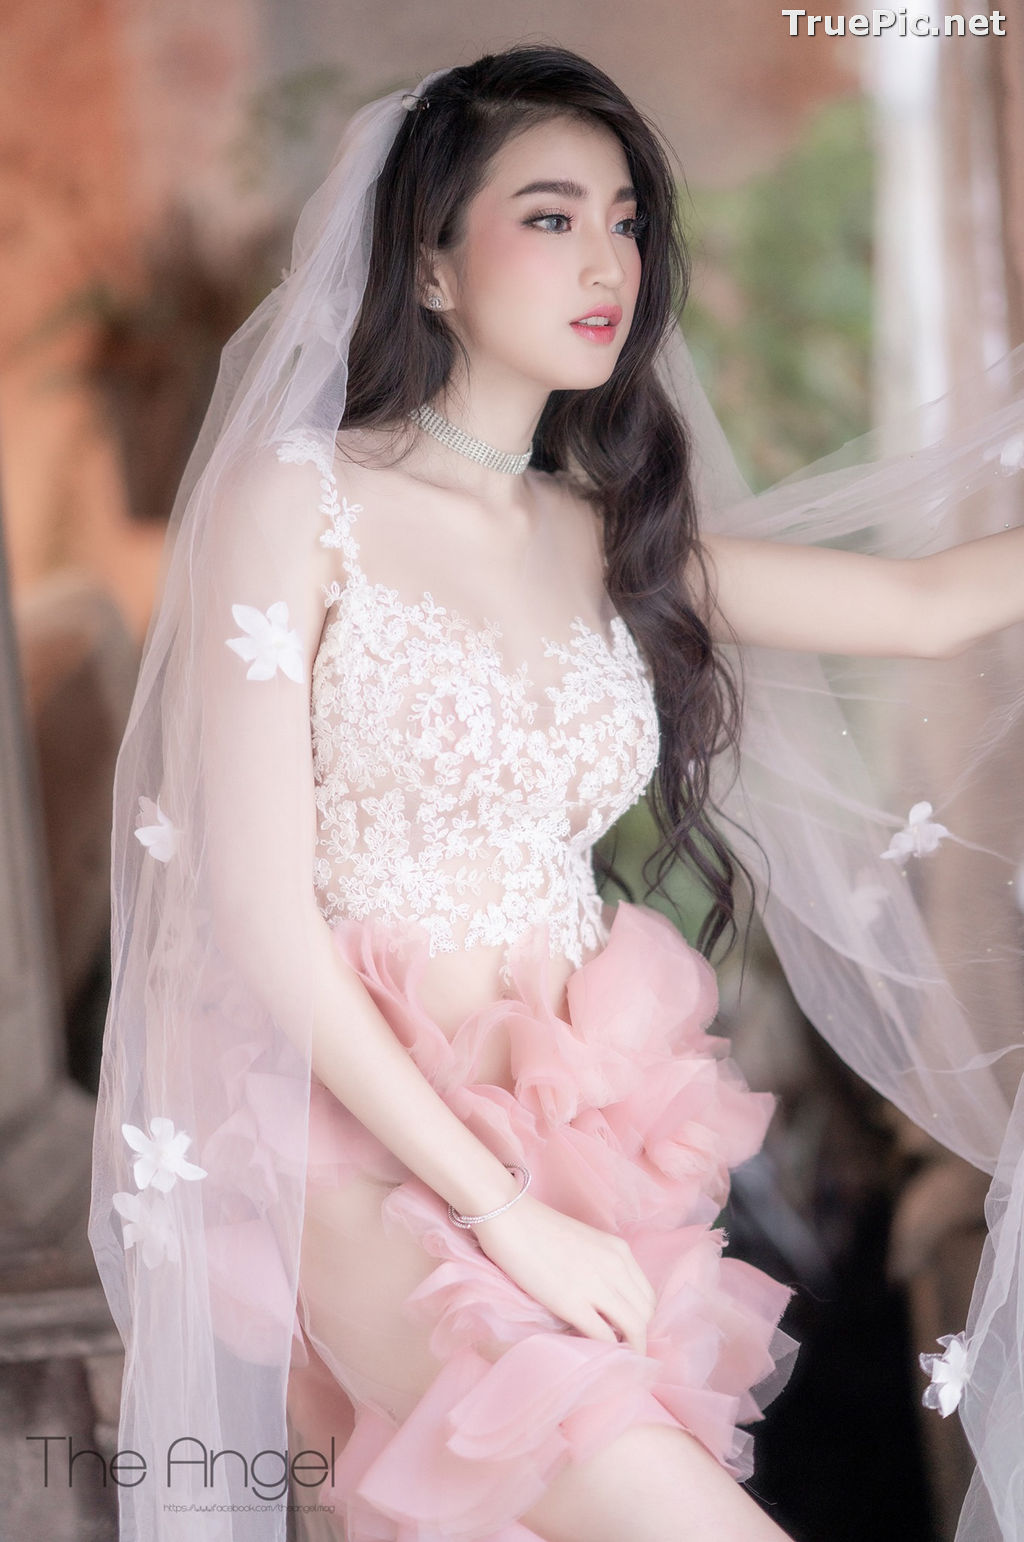 Image Thailand Model - Minggomut Maming Kongsawas - Beautiful Bride Concept - TruePic.net - Picture-7